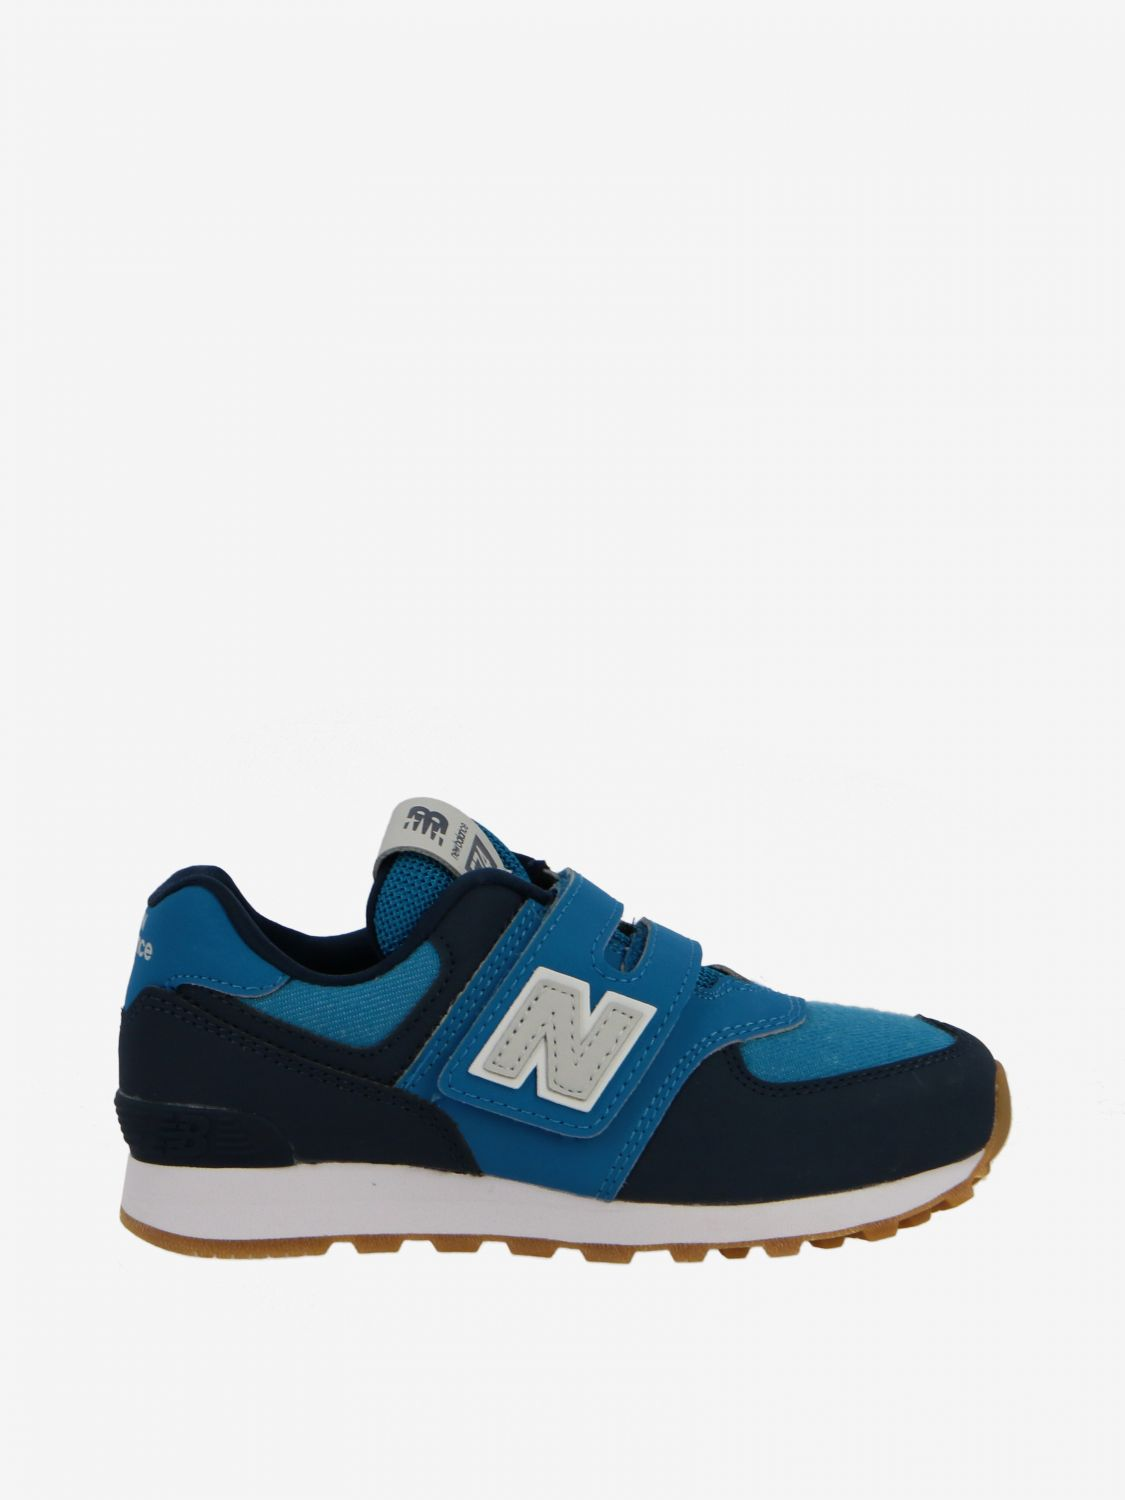 Shoes kids New Balance gnawed blue 1